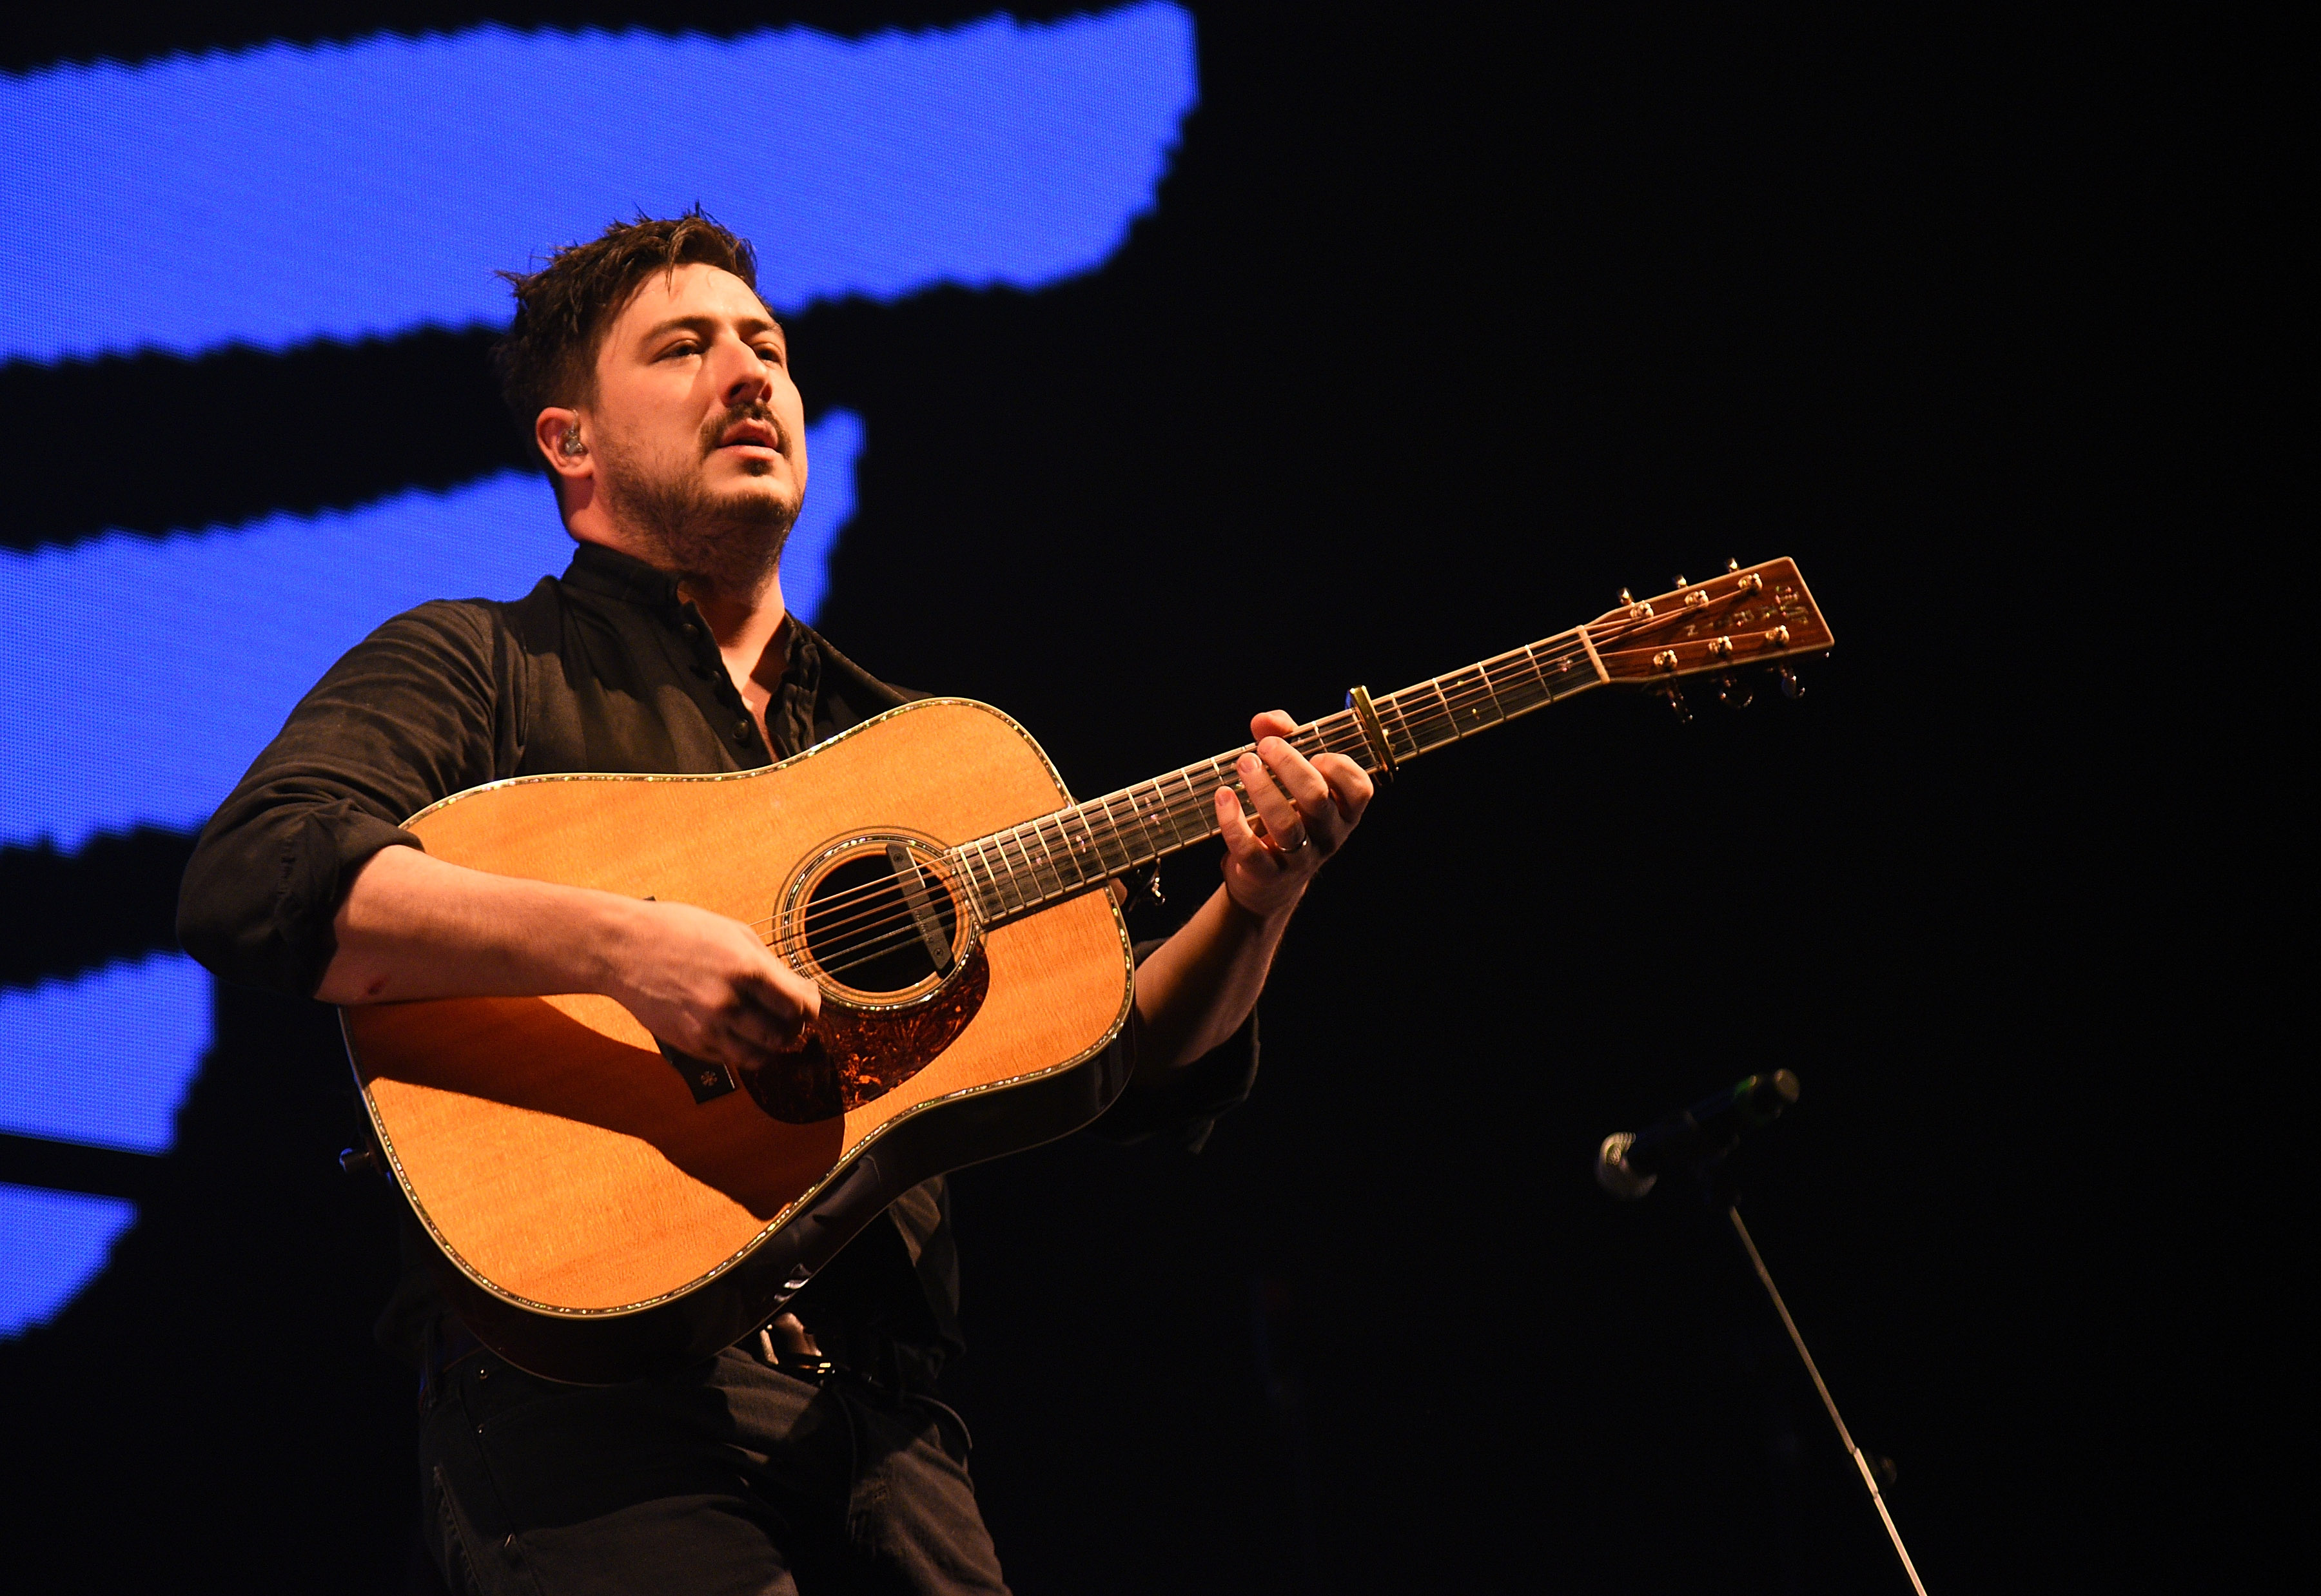 Hear Marcus Mumford's Piano Rendition of 'You'll Never Walk Alone' - EpicNews